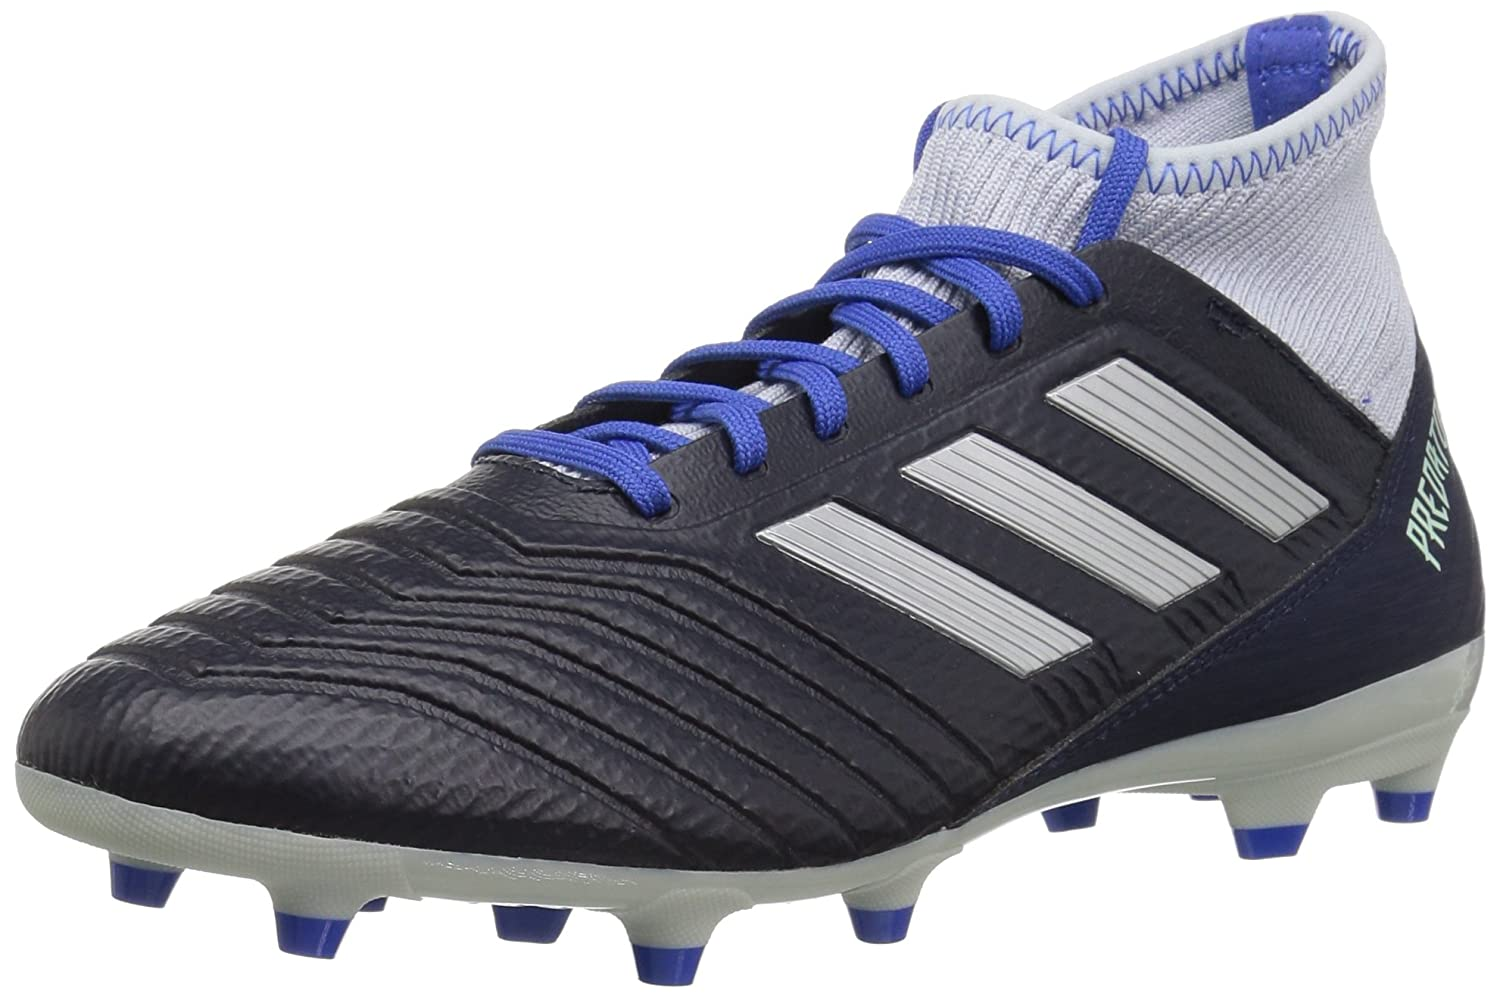 adidas Women's Predator 18.3 Firm Ground Soccer Shoe B0778WLD57 7.5 B(M) US|Legend Ink/Silver Metallic/Aero Blue